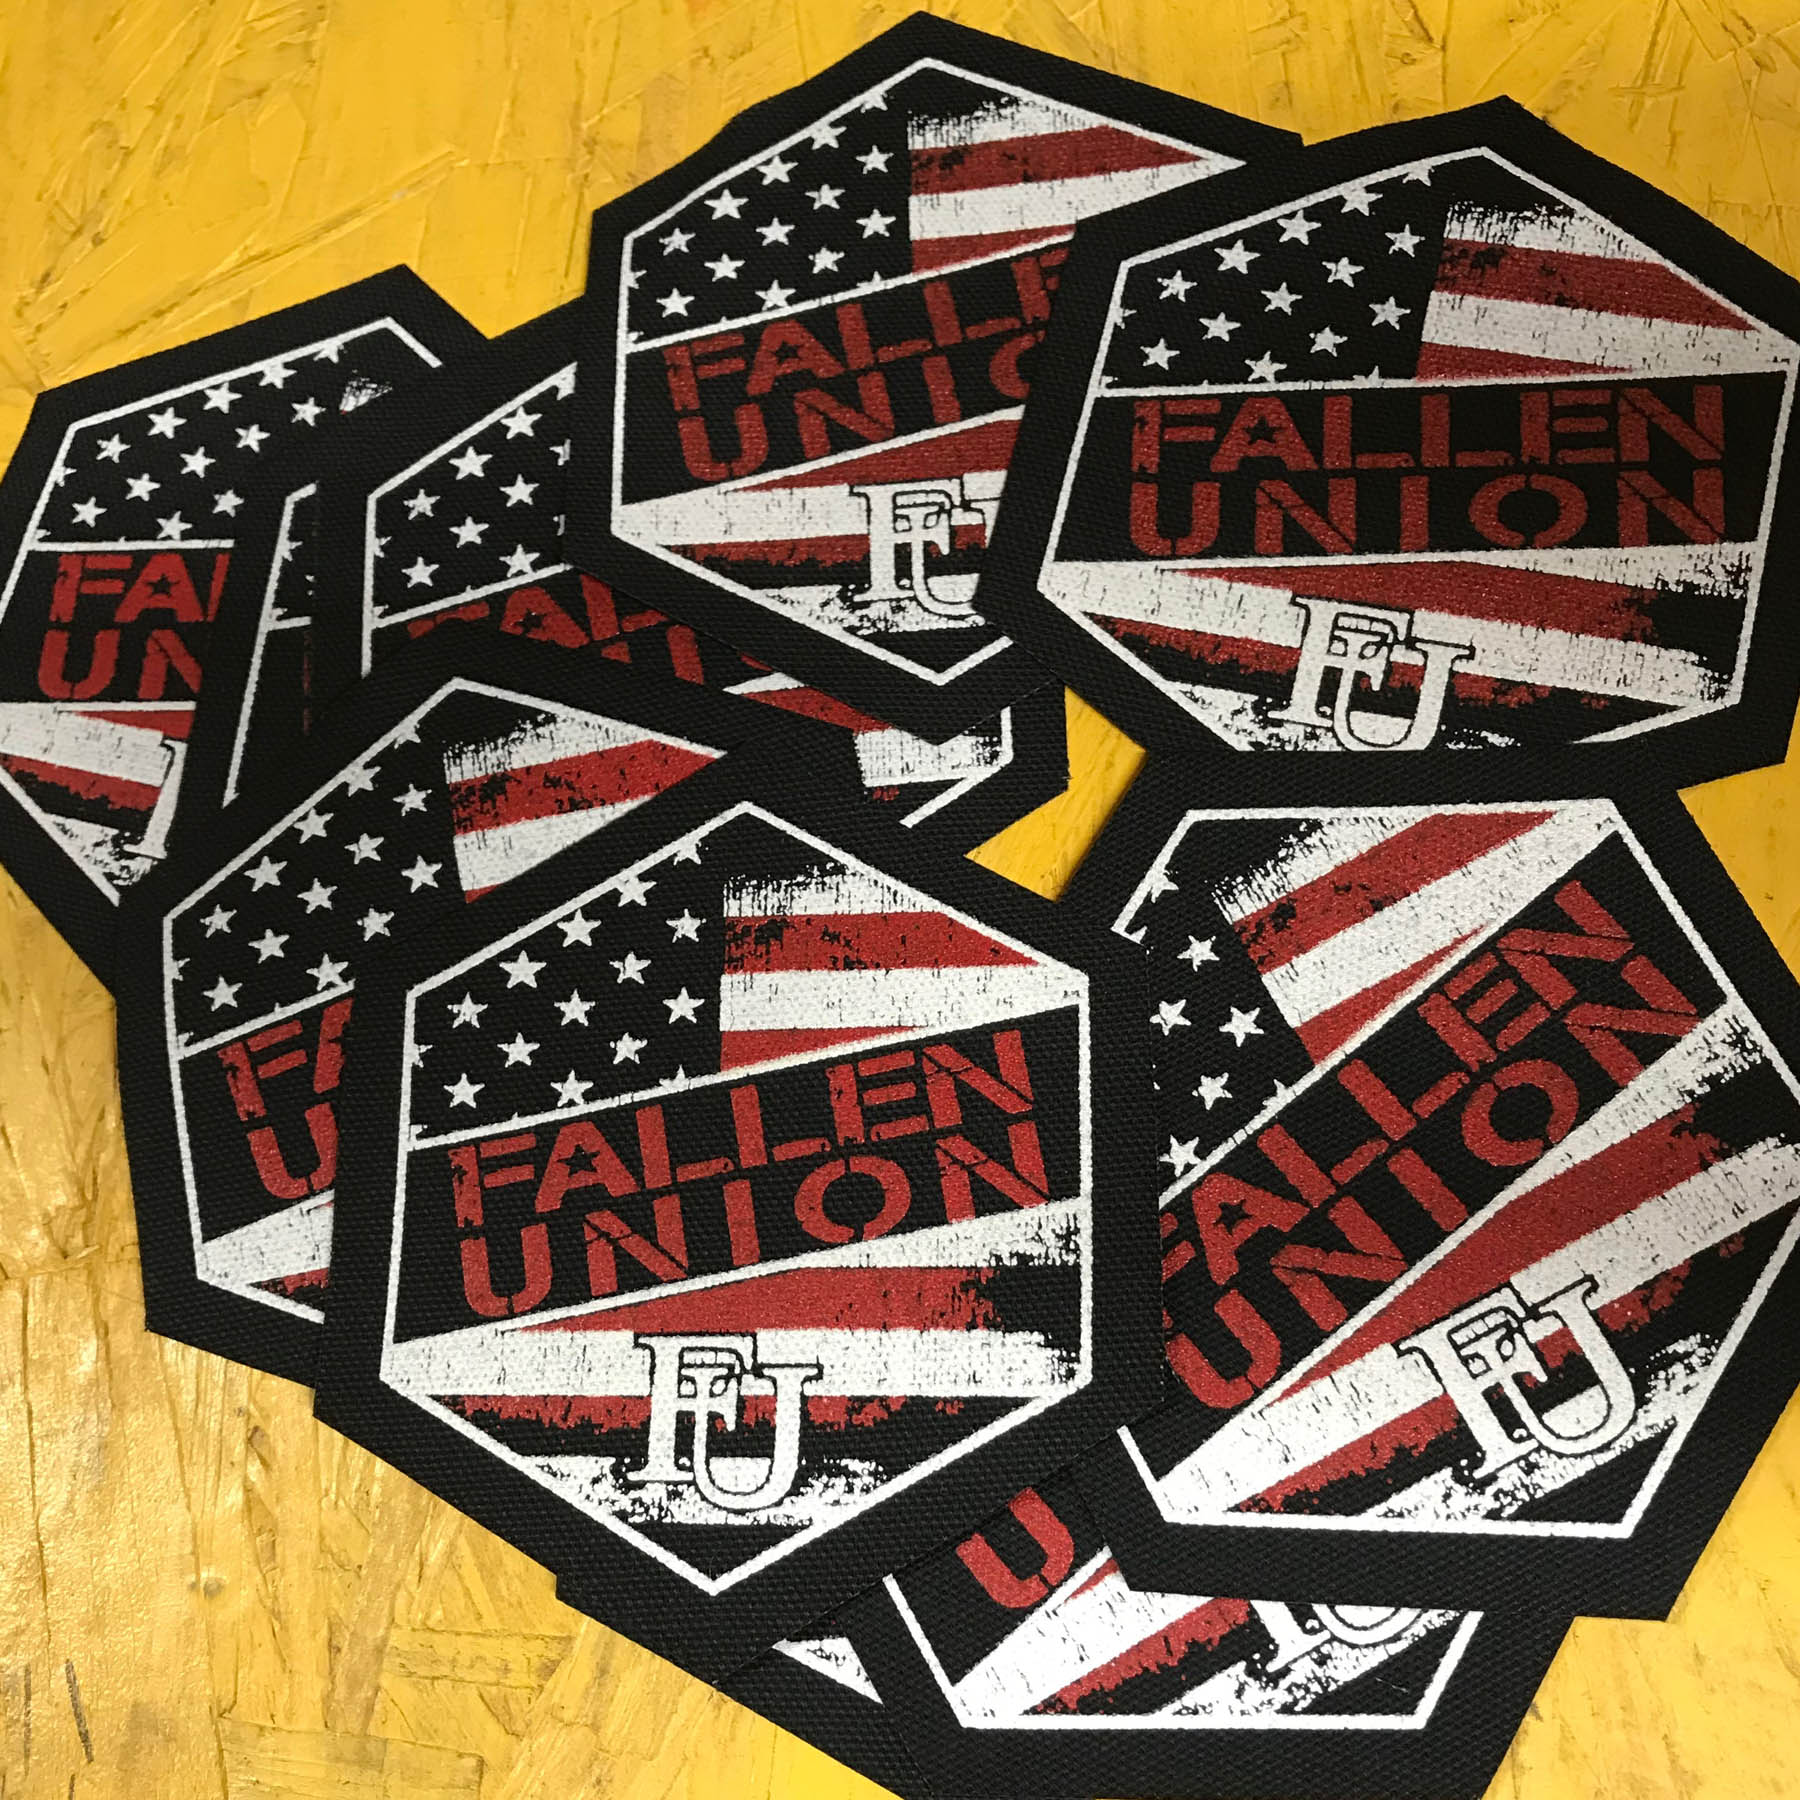 PRODUCT CUSTOM CUT PATCHES .jpg